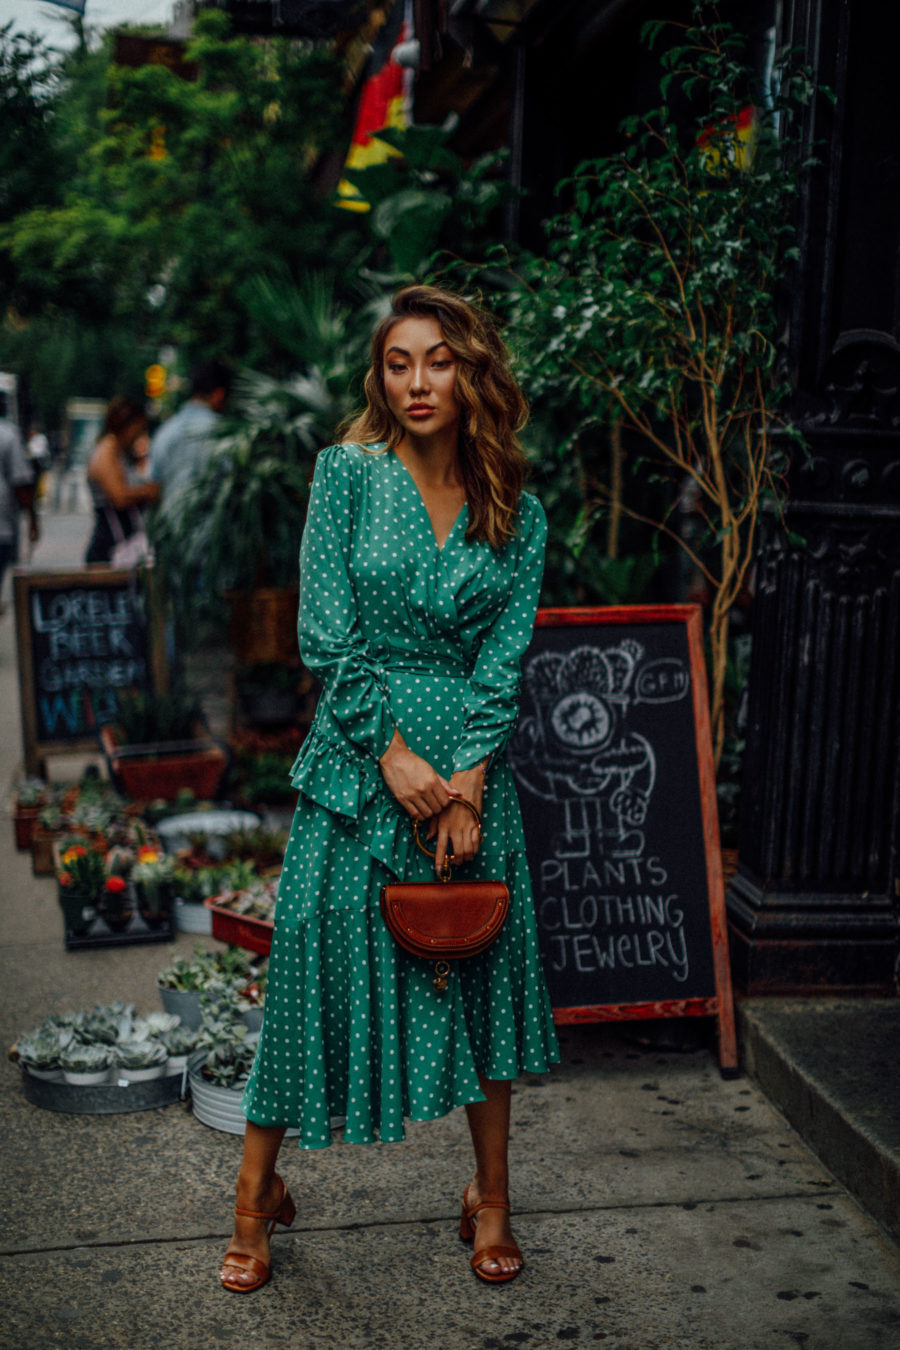 The Only 3 Wedding Guest Outfits You Need This Summer - Green Polka Dot Dress, Chloe Nile Bracelet bag, Block Heel Sandals, Summer Cocktail Dress // Notjessfashion.com